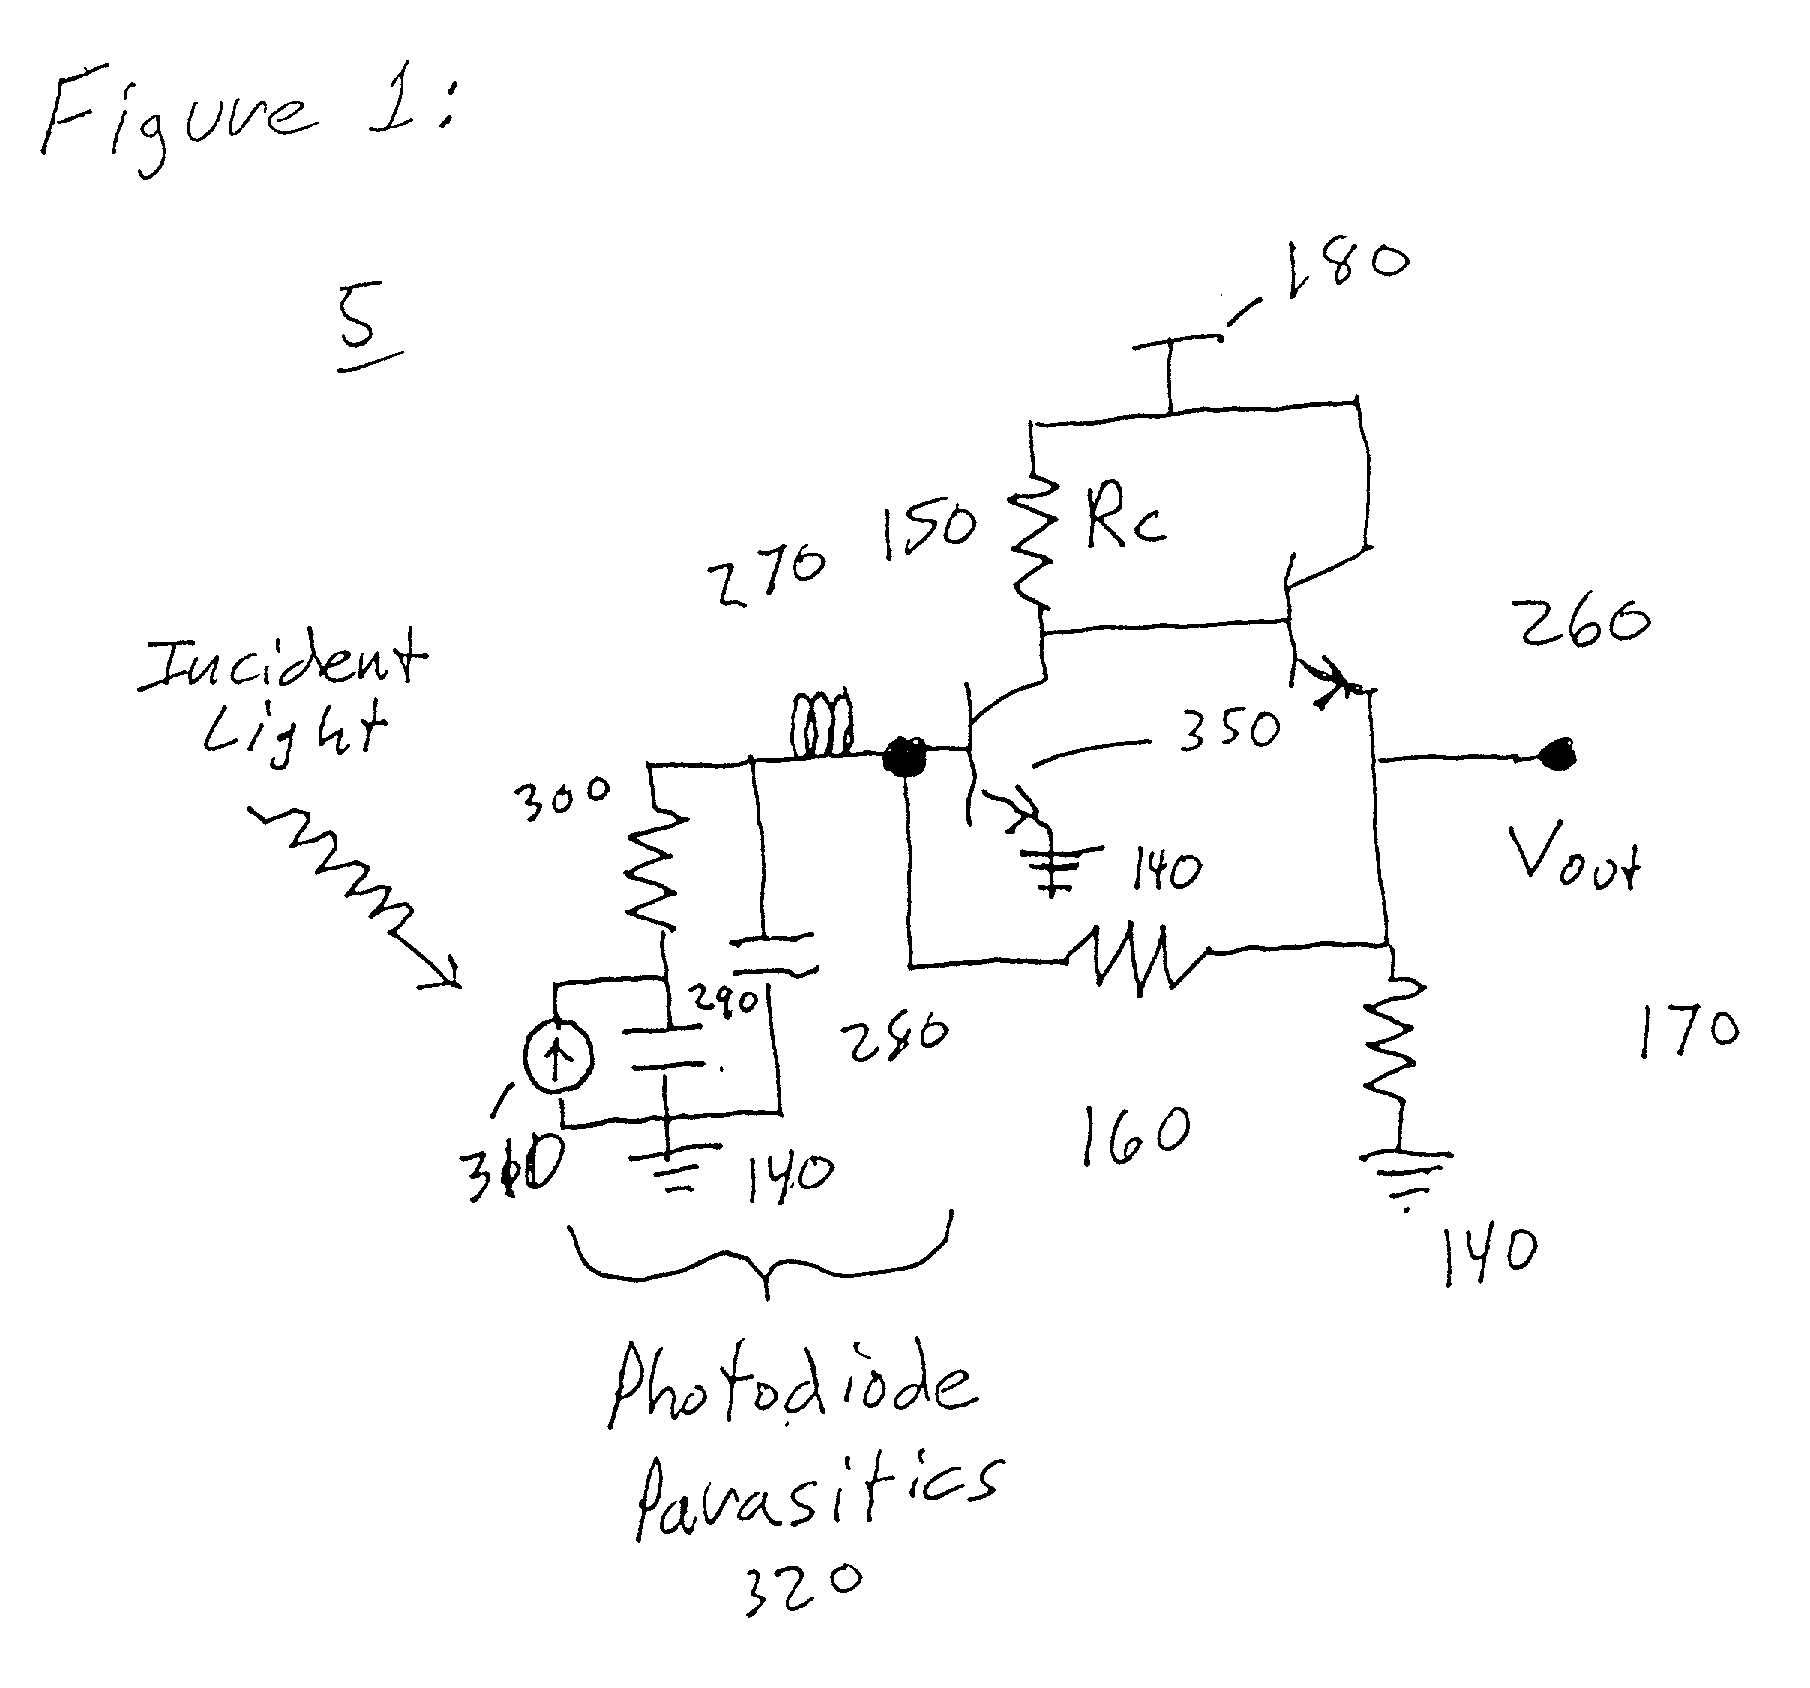 US20030016084 on heterojunction bipolar transistor